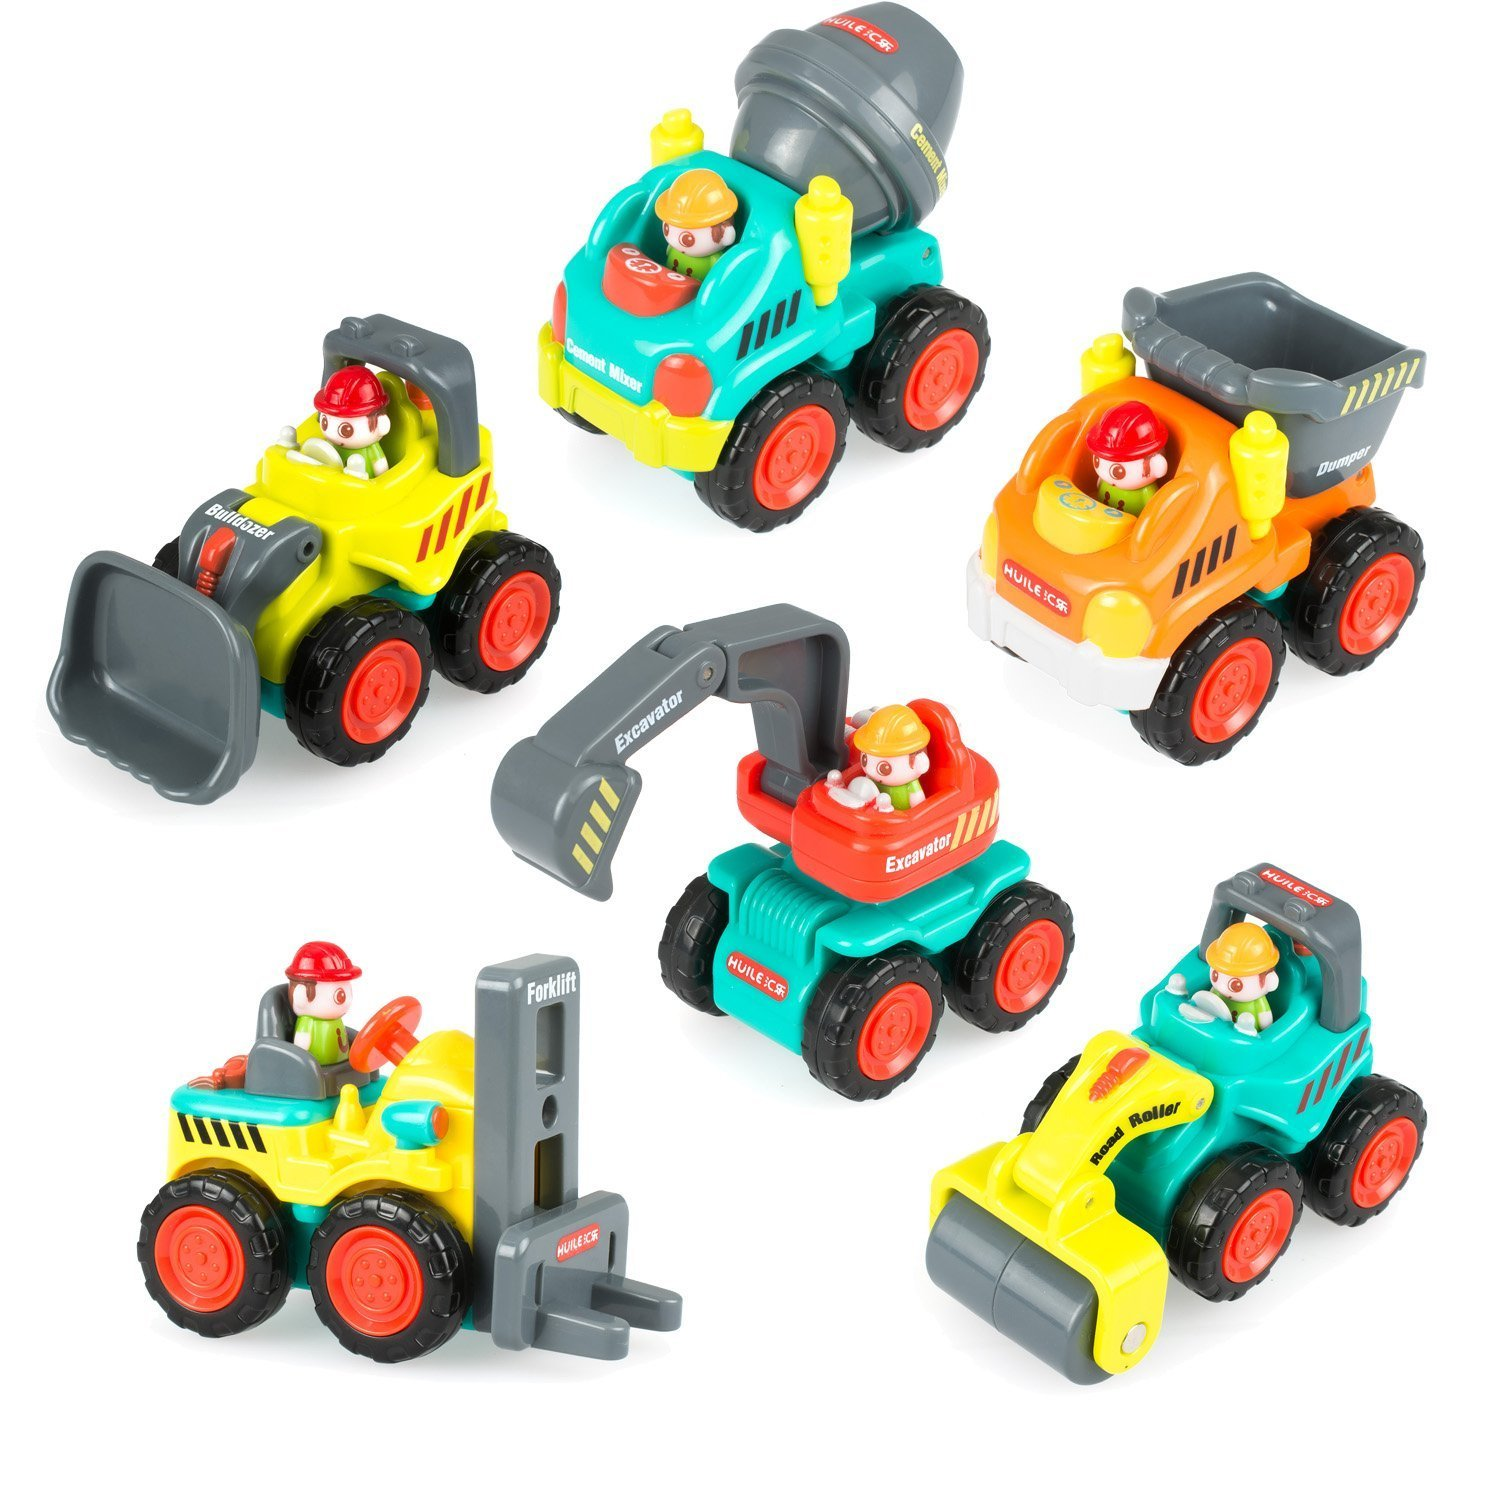 Baby toys Push and Go Friction Powered Car Toys Pocket Car Toys Sliding for Baby Toddlers Bulldozer Cement Mixer Dumper Forklift Excavator and Road Roller set of 6 1 Year Old to 3 Year Old